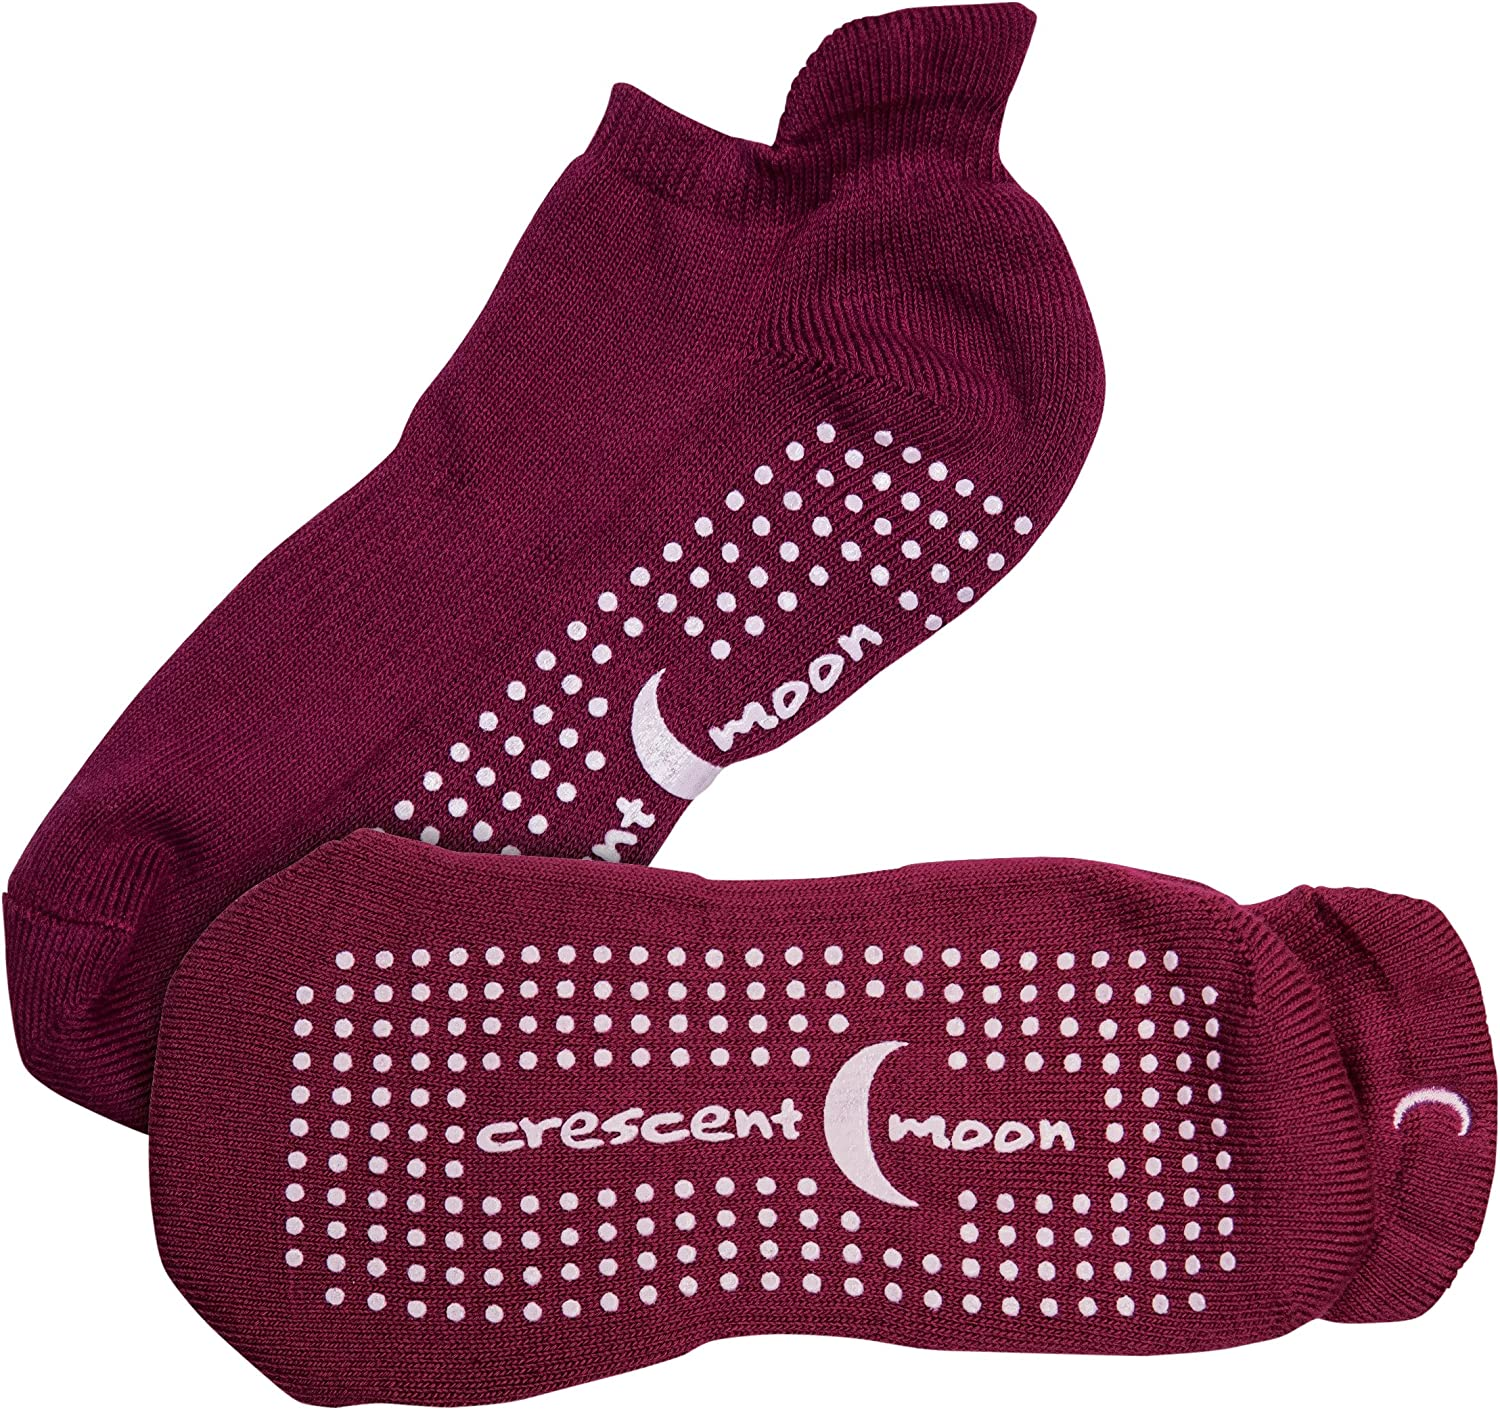 Max 81% OFF National products Crescent Moon Exersocks Barre Yoga Socks Small and Pilates Win